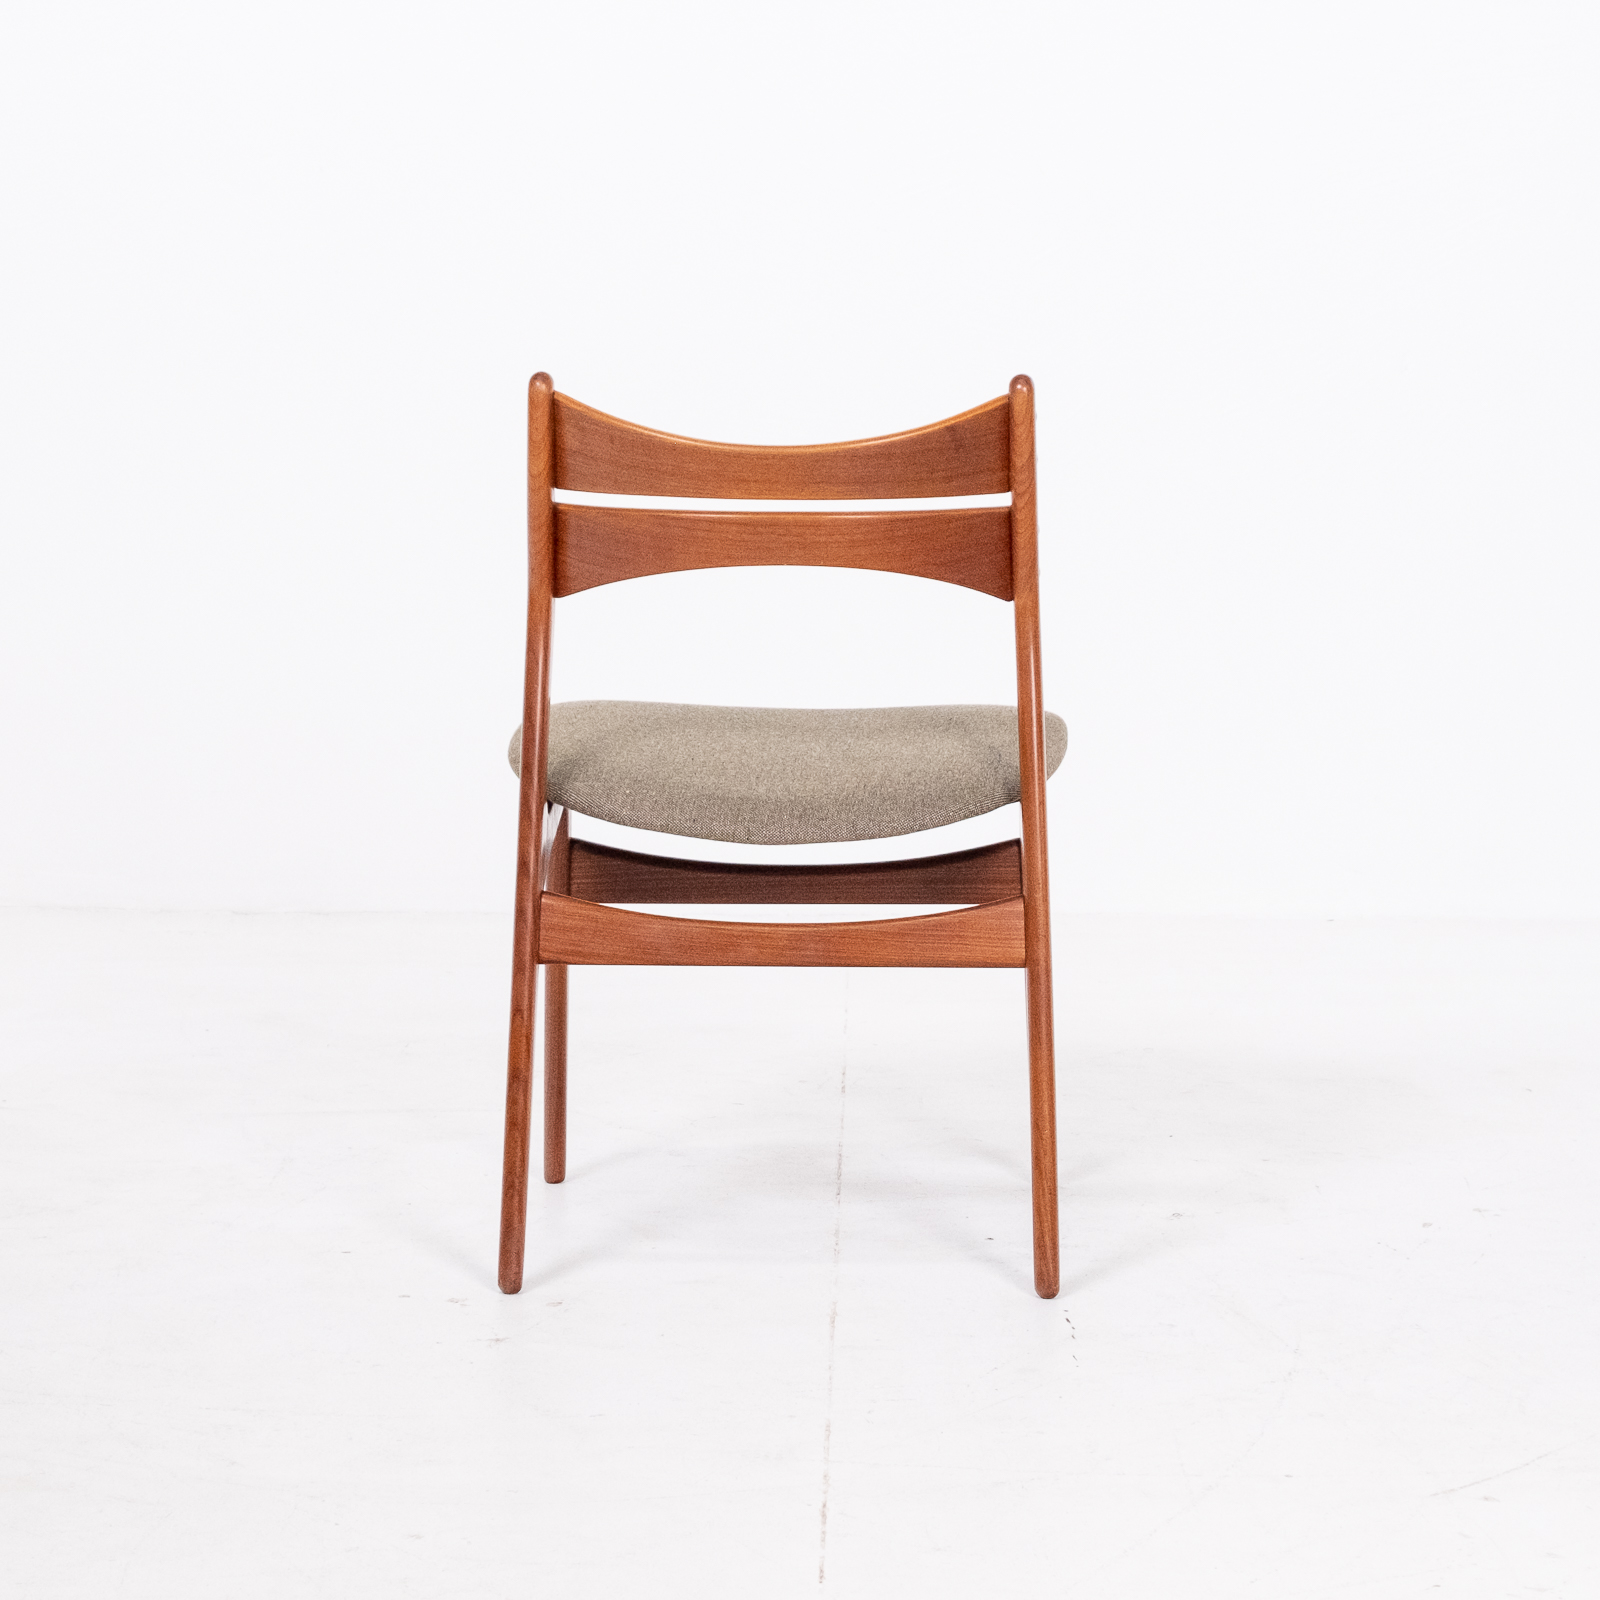 Set Of 2 Model 130 Dining Chairs By Erik Buch For Christian Christensens Mobelfabrik In New Instyle Upholstery And Teak, 1960s, Denmark 05